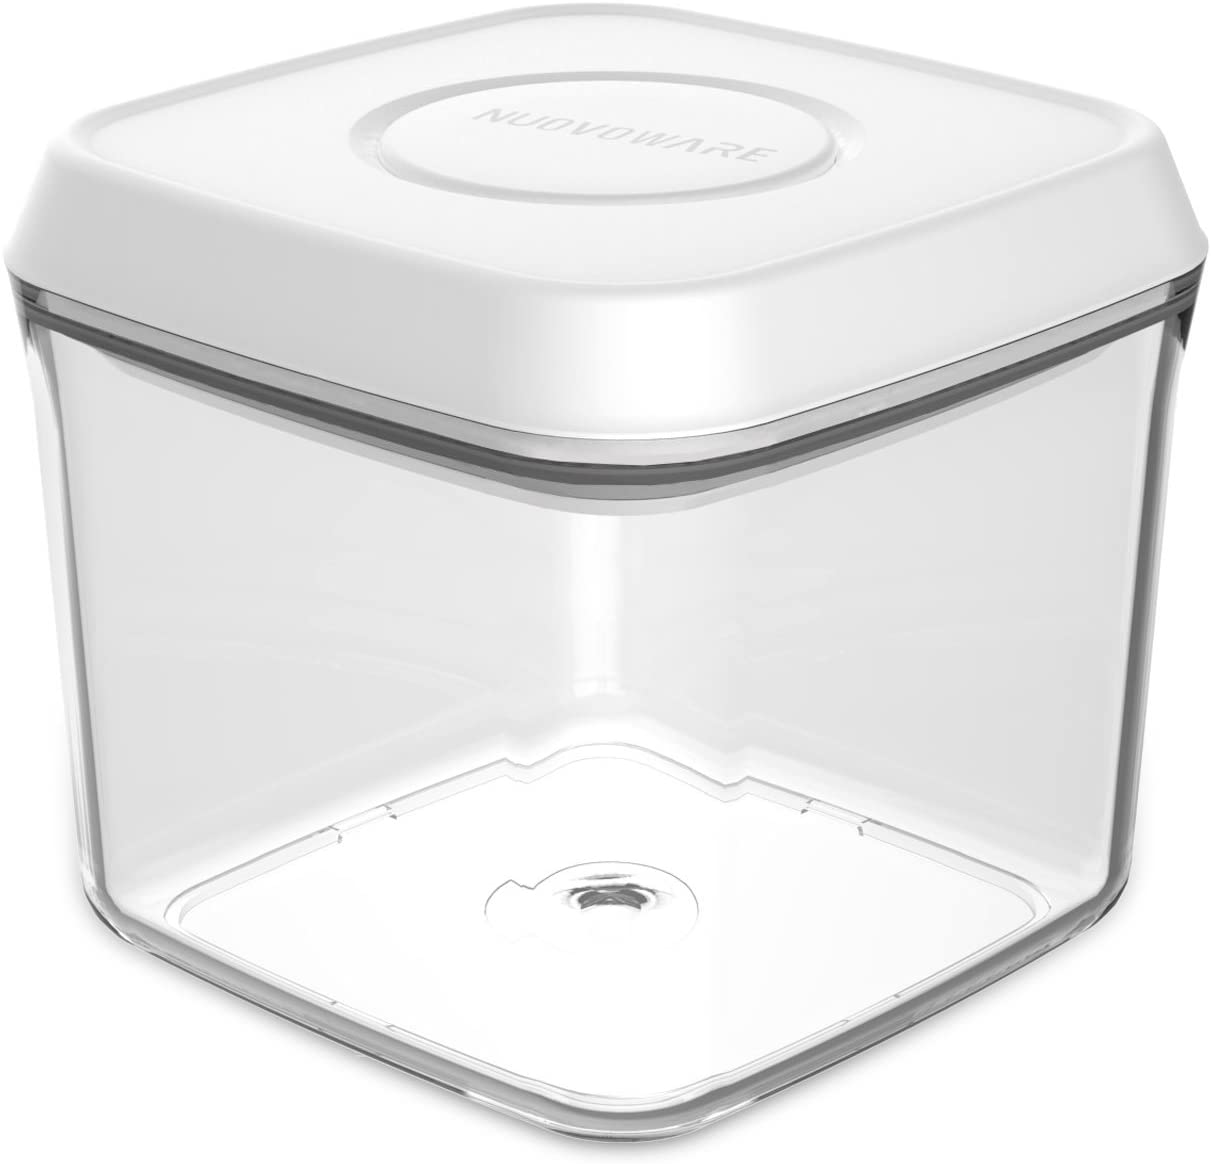 Nuovoware 0.75 Quart Square Pop Container/Airtight Food Storage Container with Pop-up Button, Crystal Clear